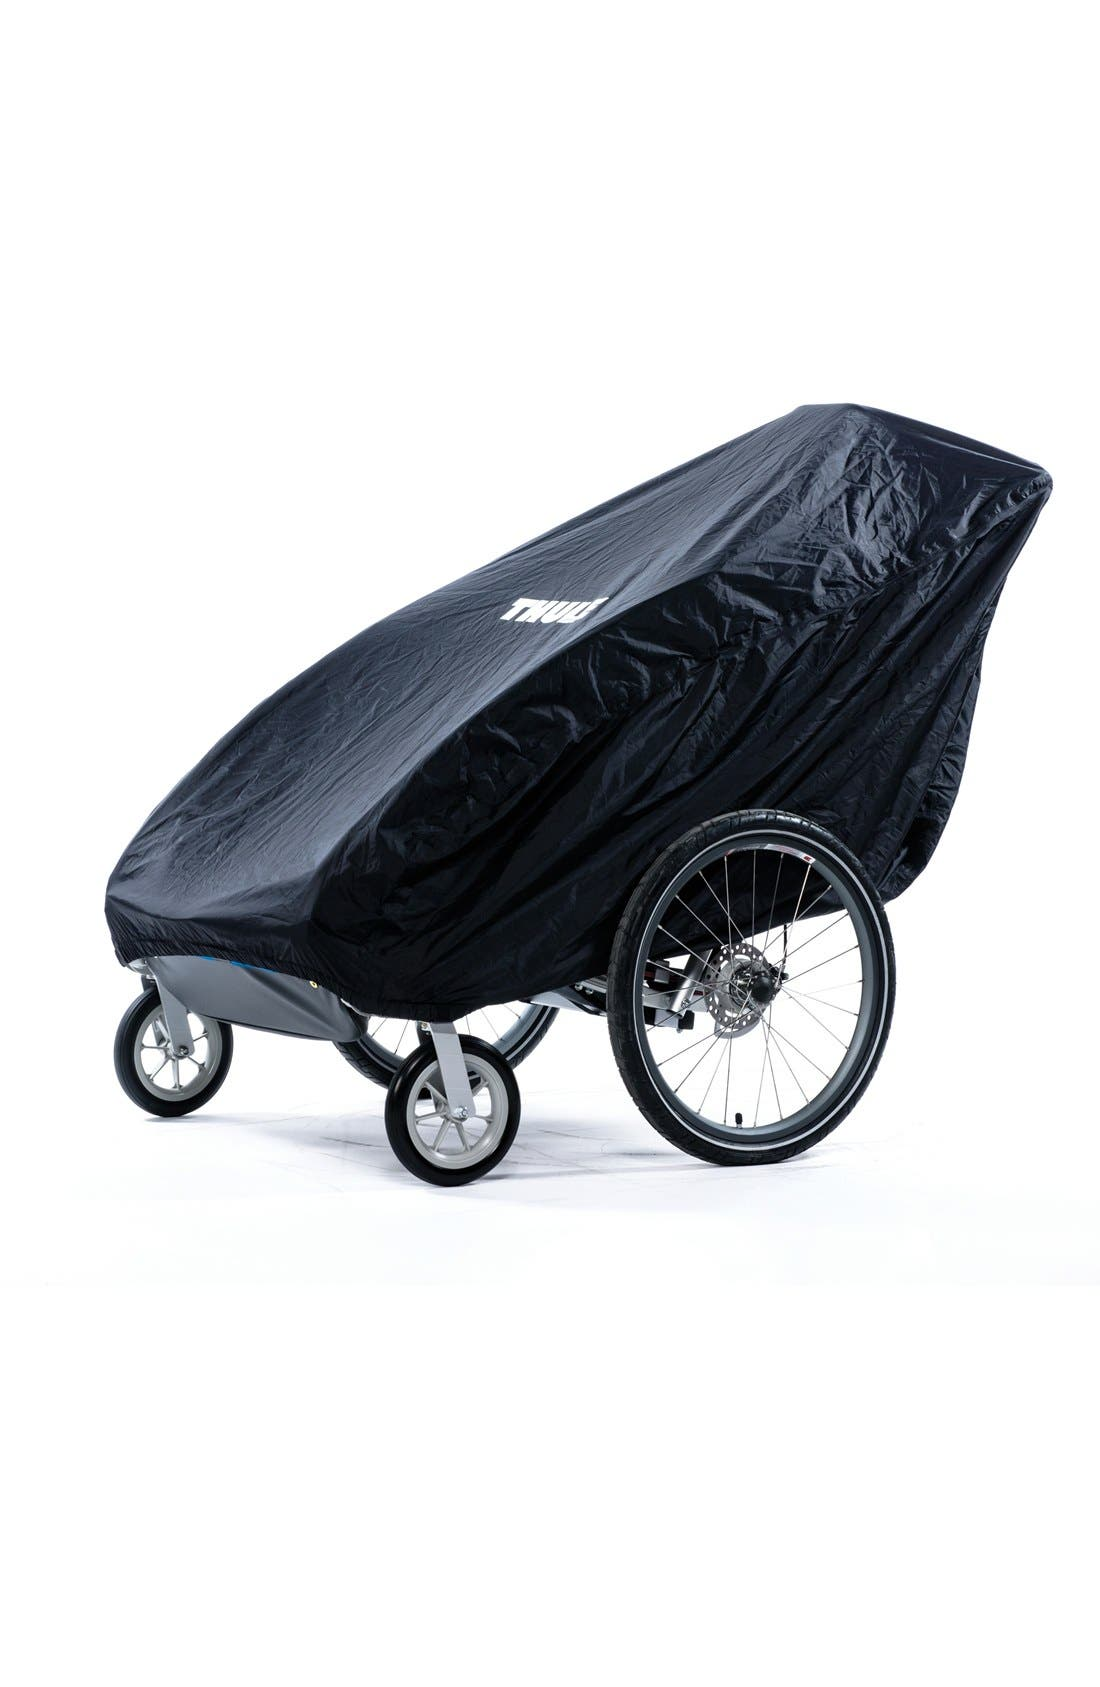 Main Image - Thule Stroller Storage Cover